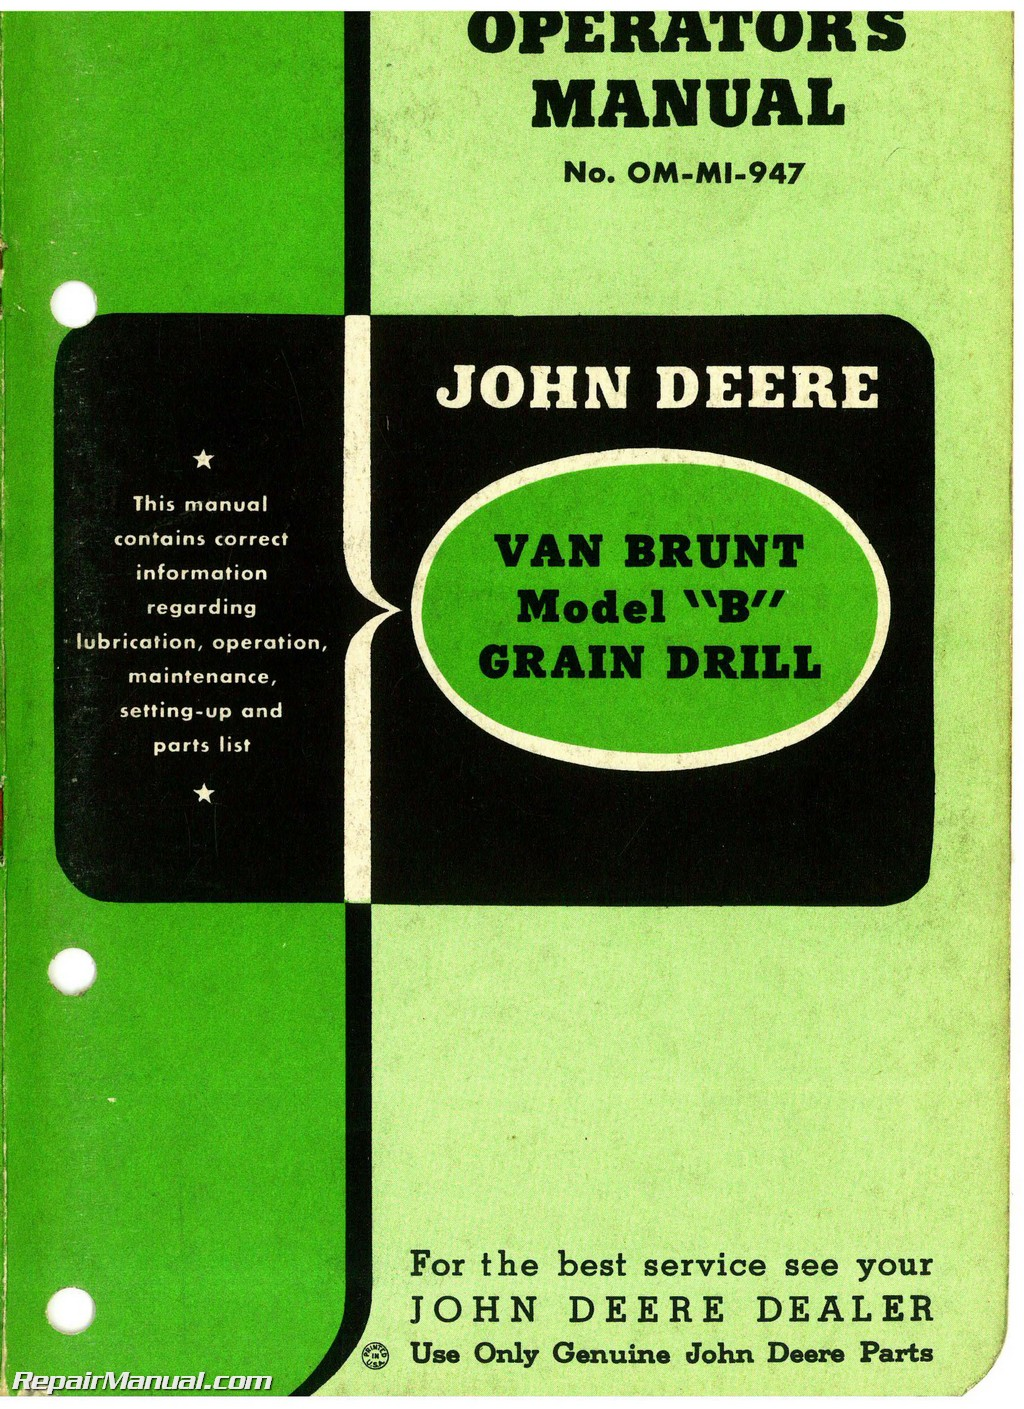 john deere van brunt model b grain drill operators manual parts manual rh repairmanual com john deere b service manual pdf free john deere b service manual free